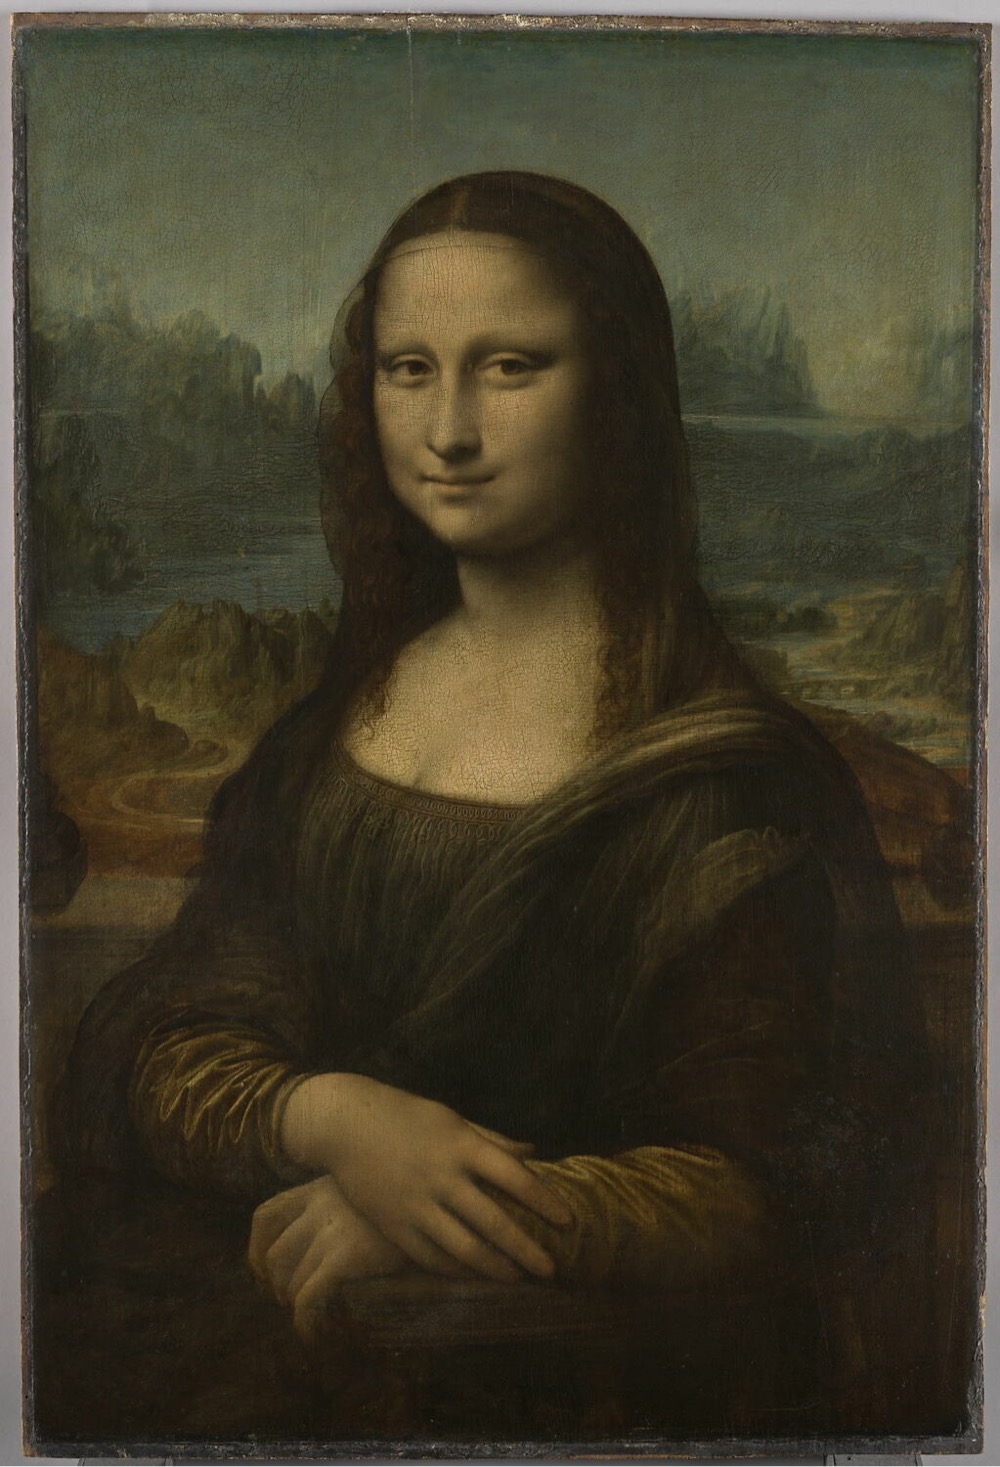 The Louvre Puts Its Massive Collection of Art Online